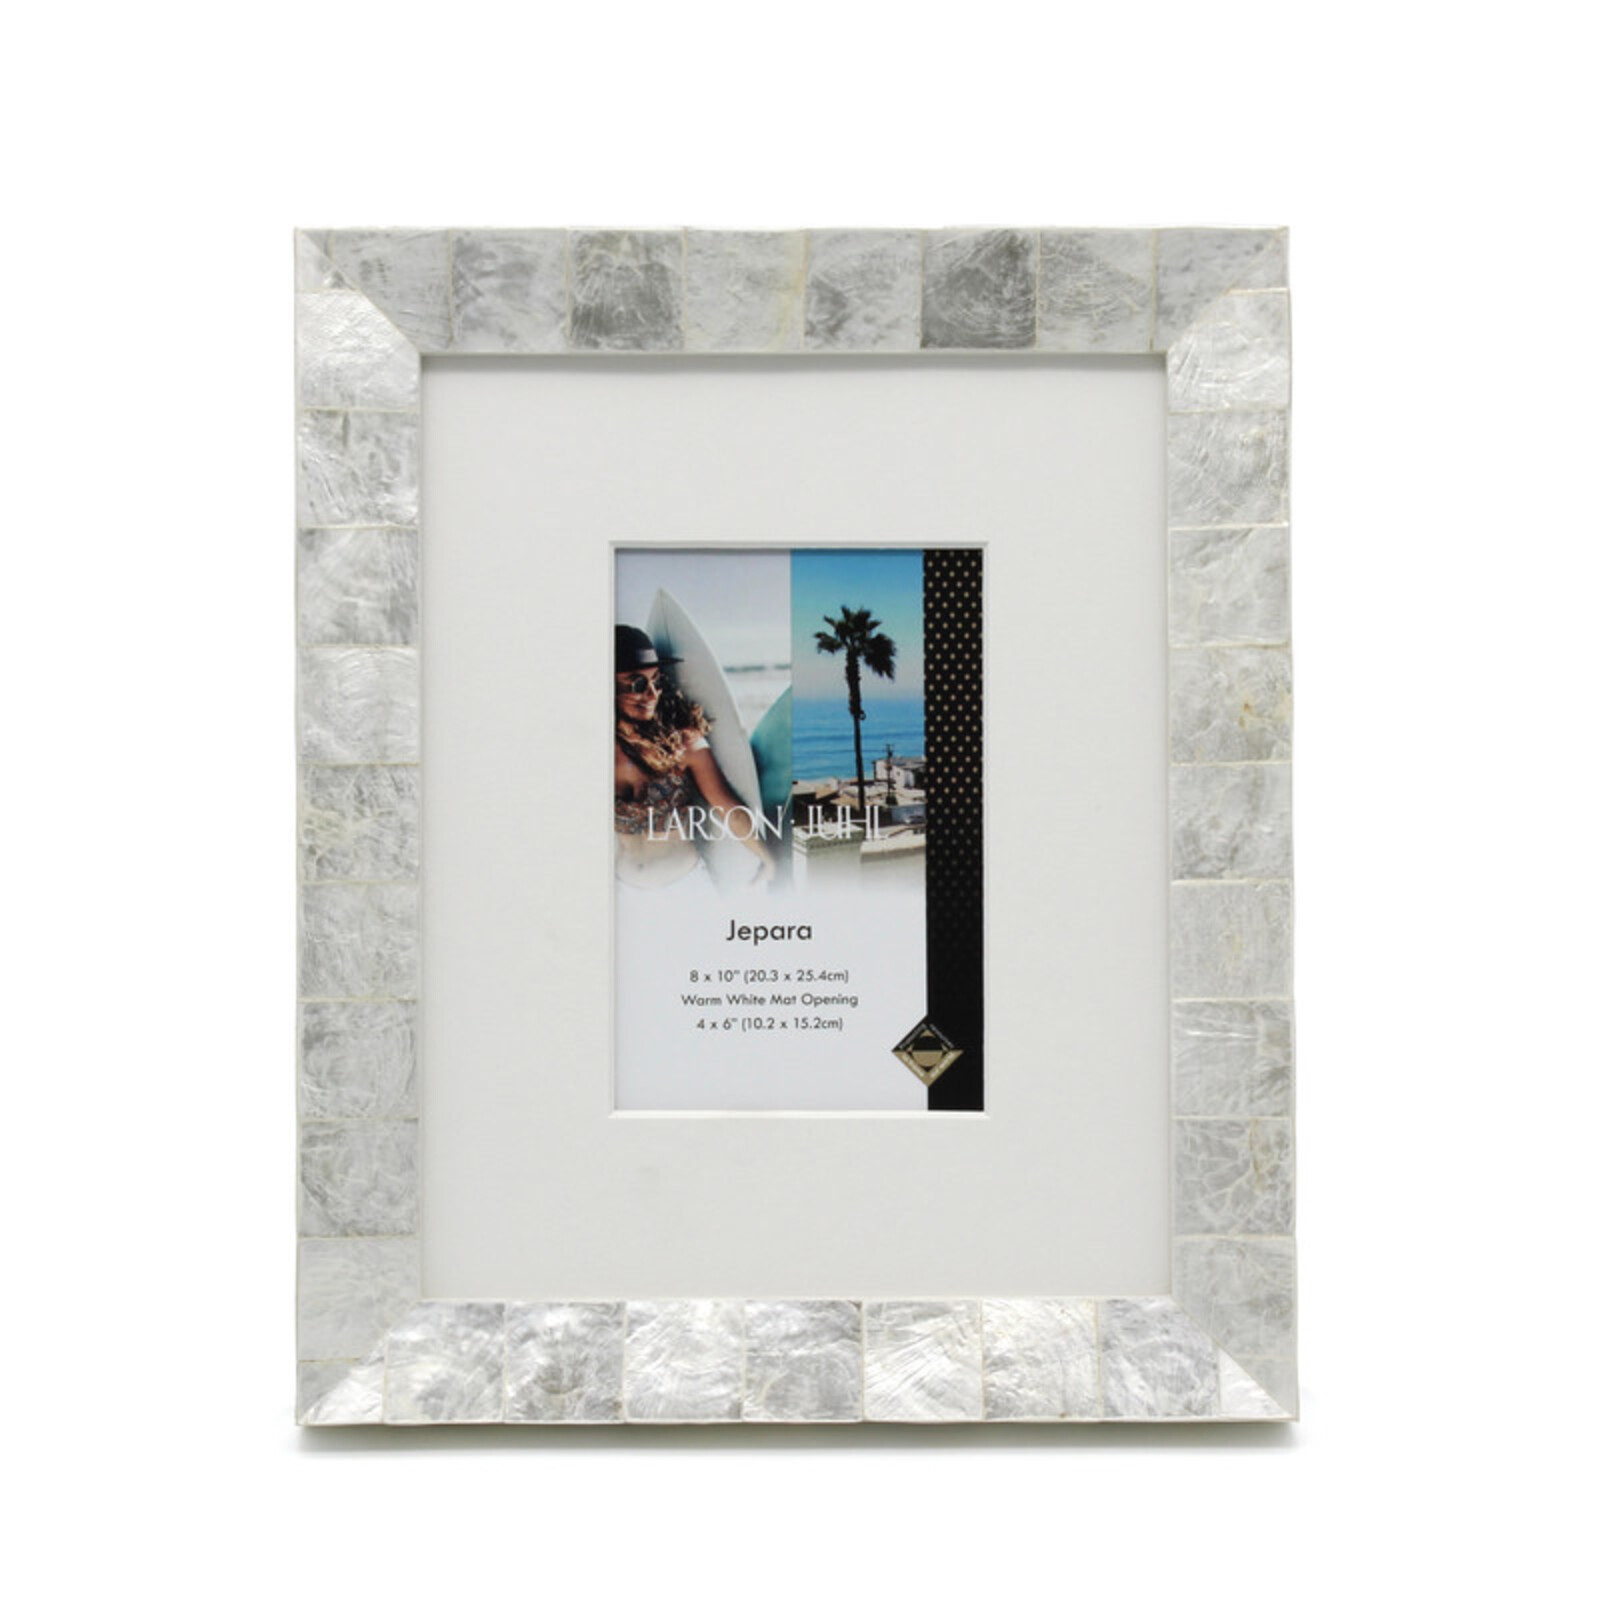 Jepara 8 x 10inch/4 x 6inch Opening Photo Frame